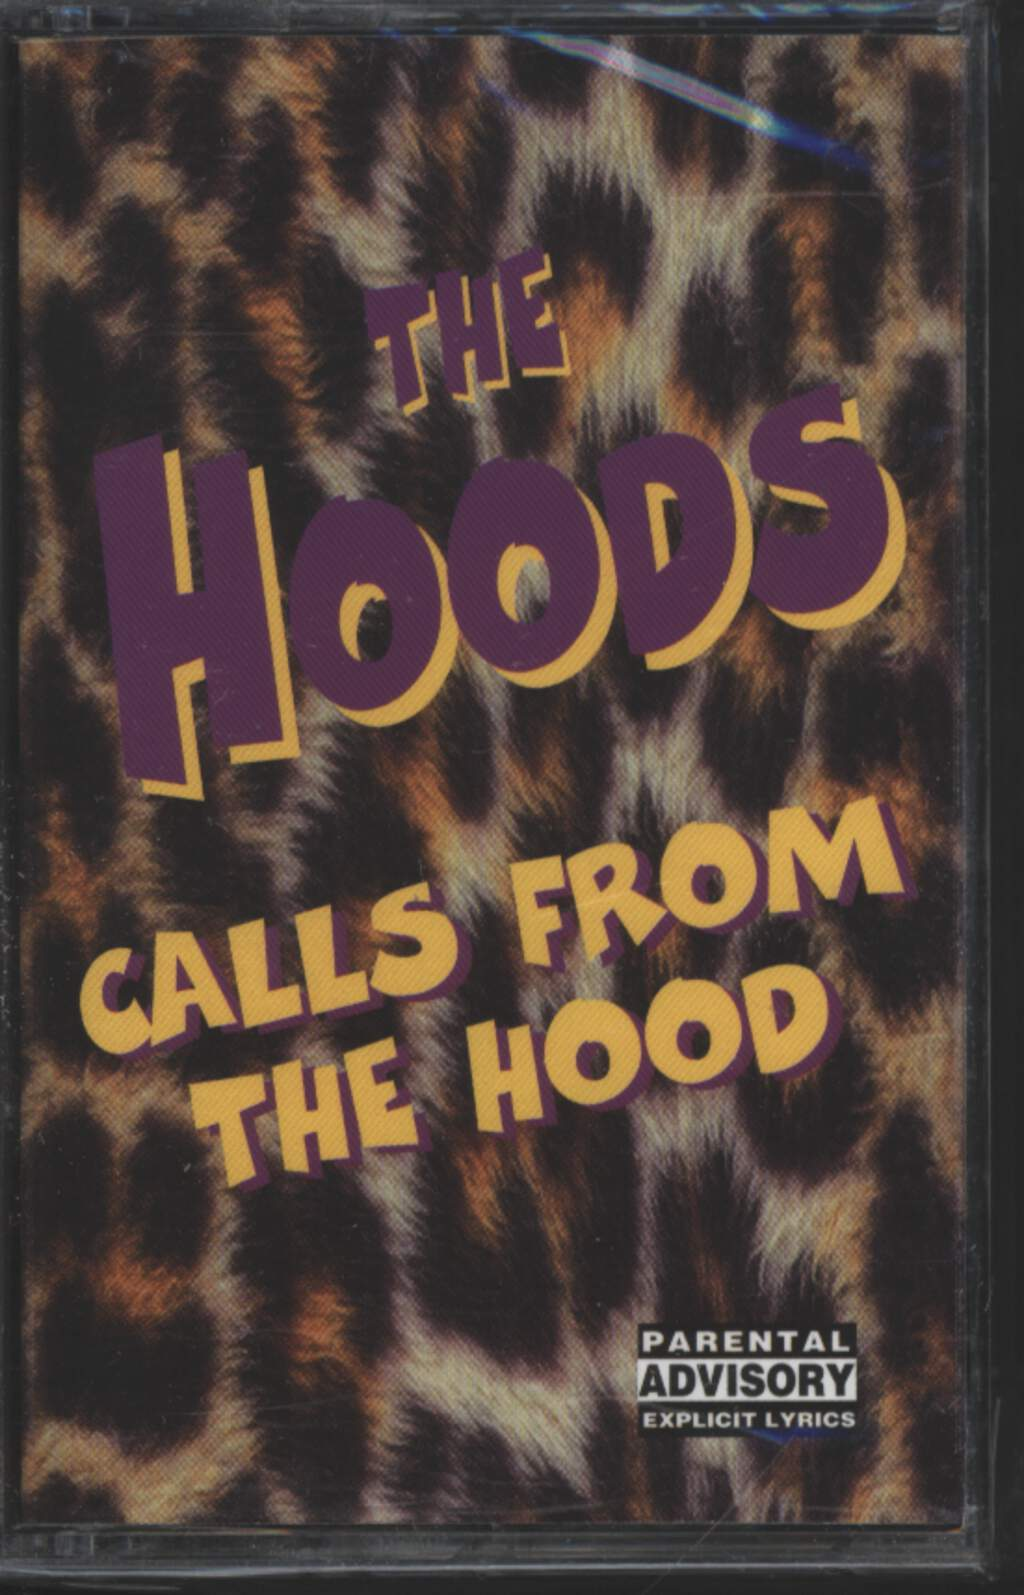 The Hoods: Calls From The Hood, Tape